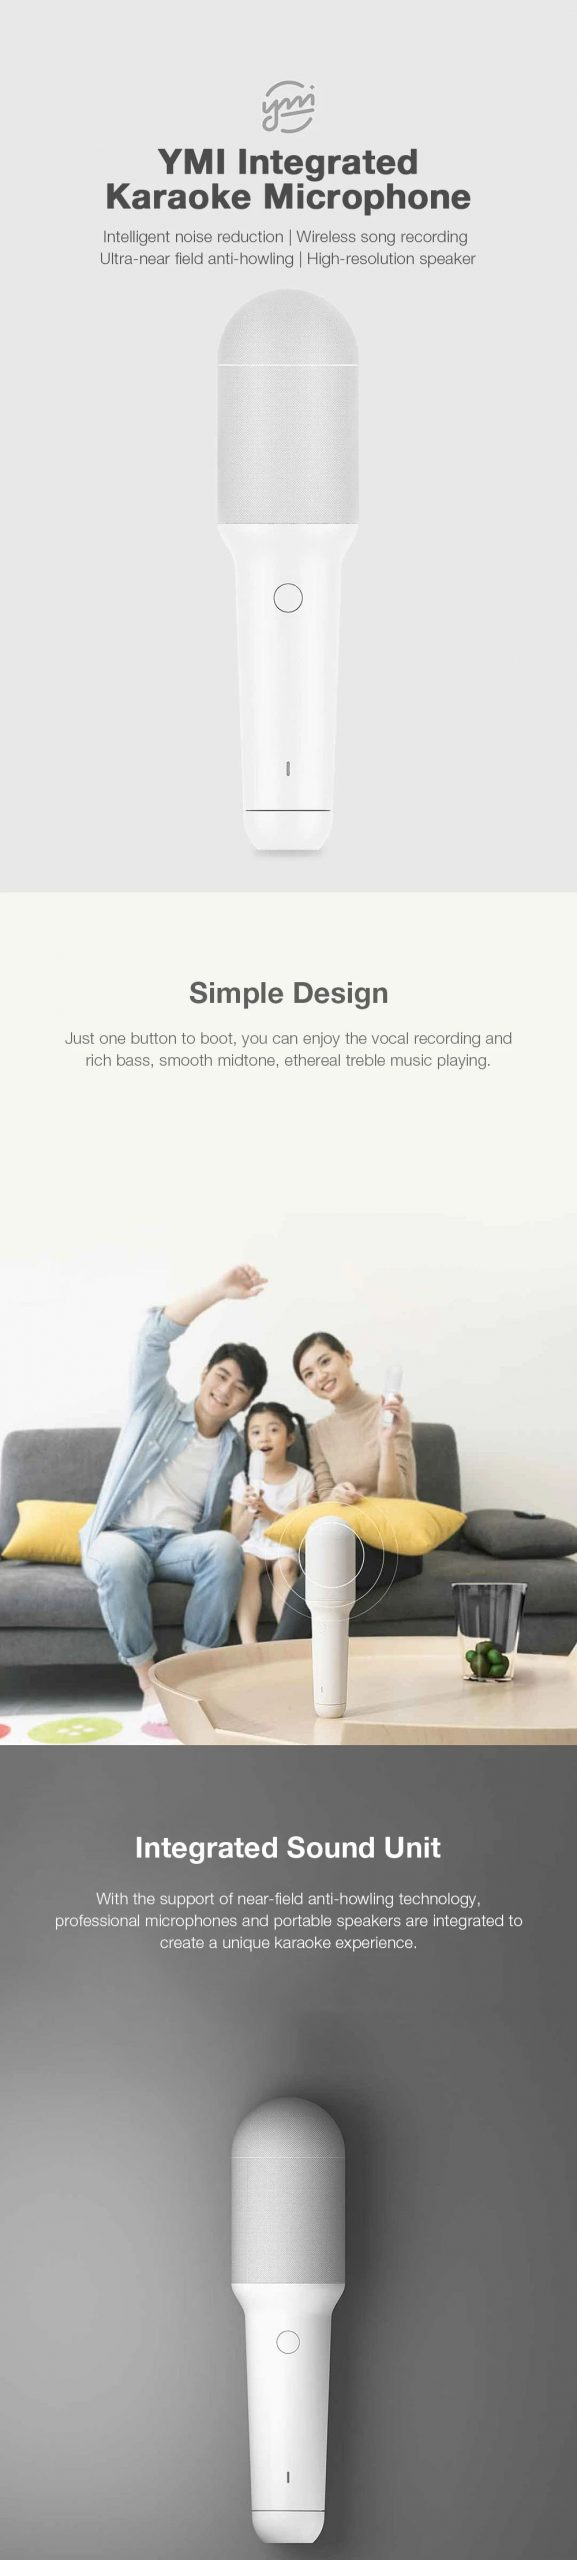 Xiaomi Integrated Bluetooth Microphone Wireless Handheld Voice Control Portable Type C Port (2)